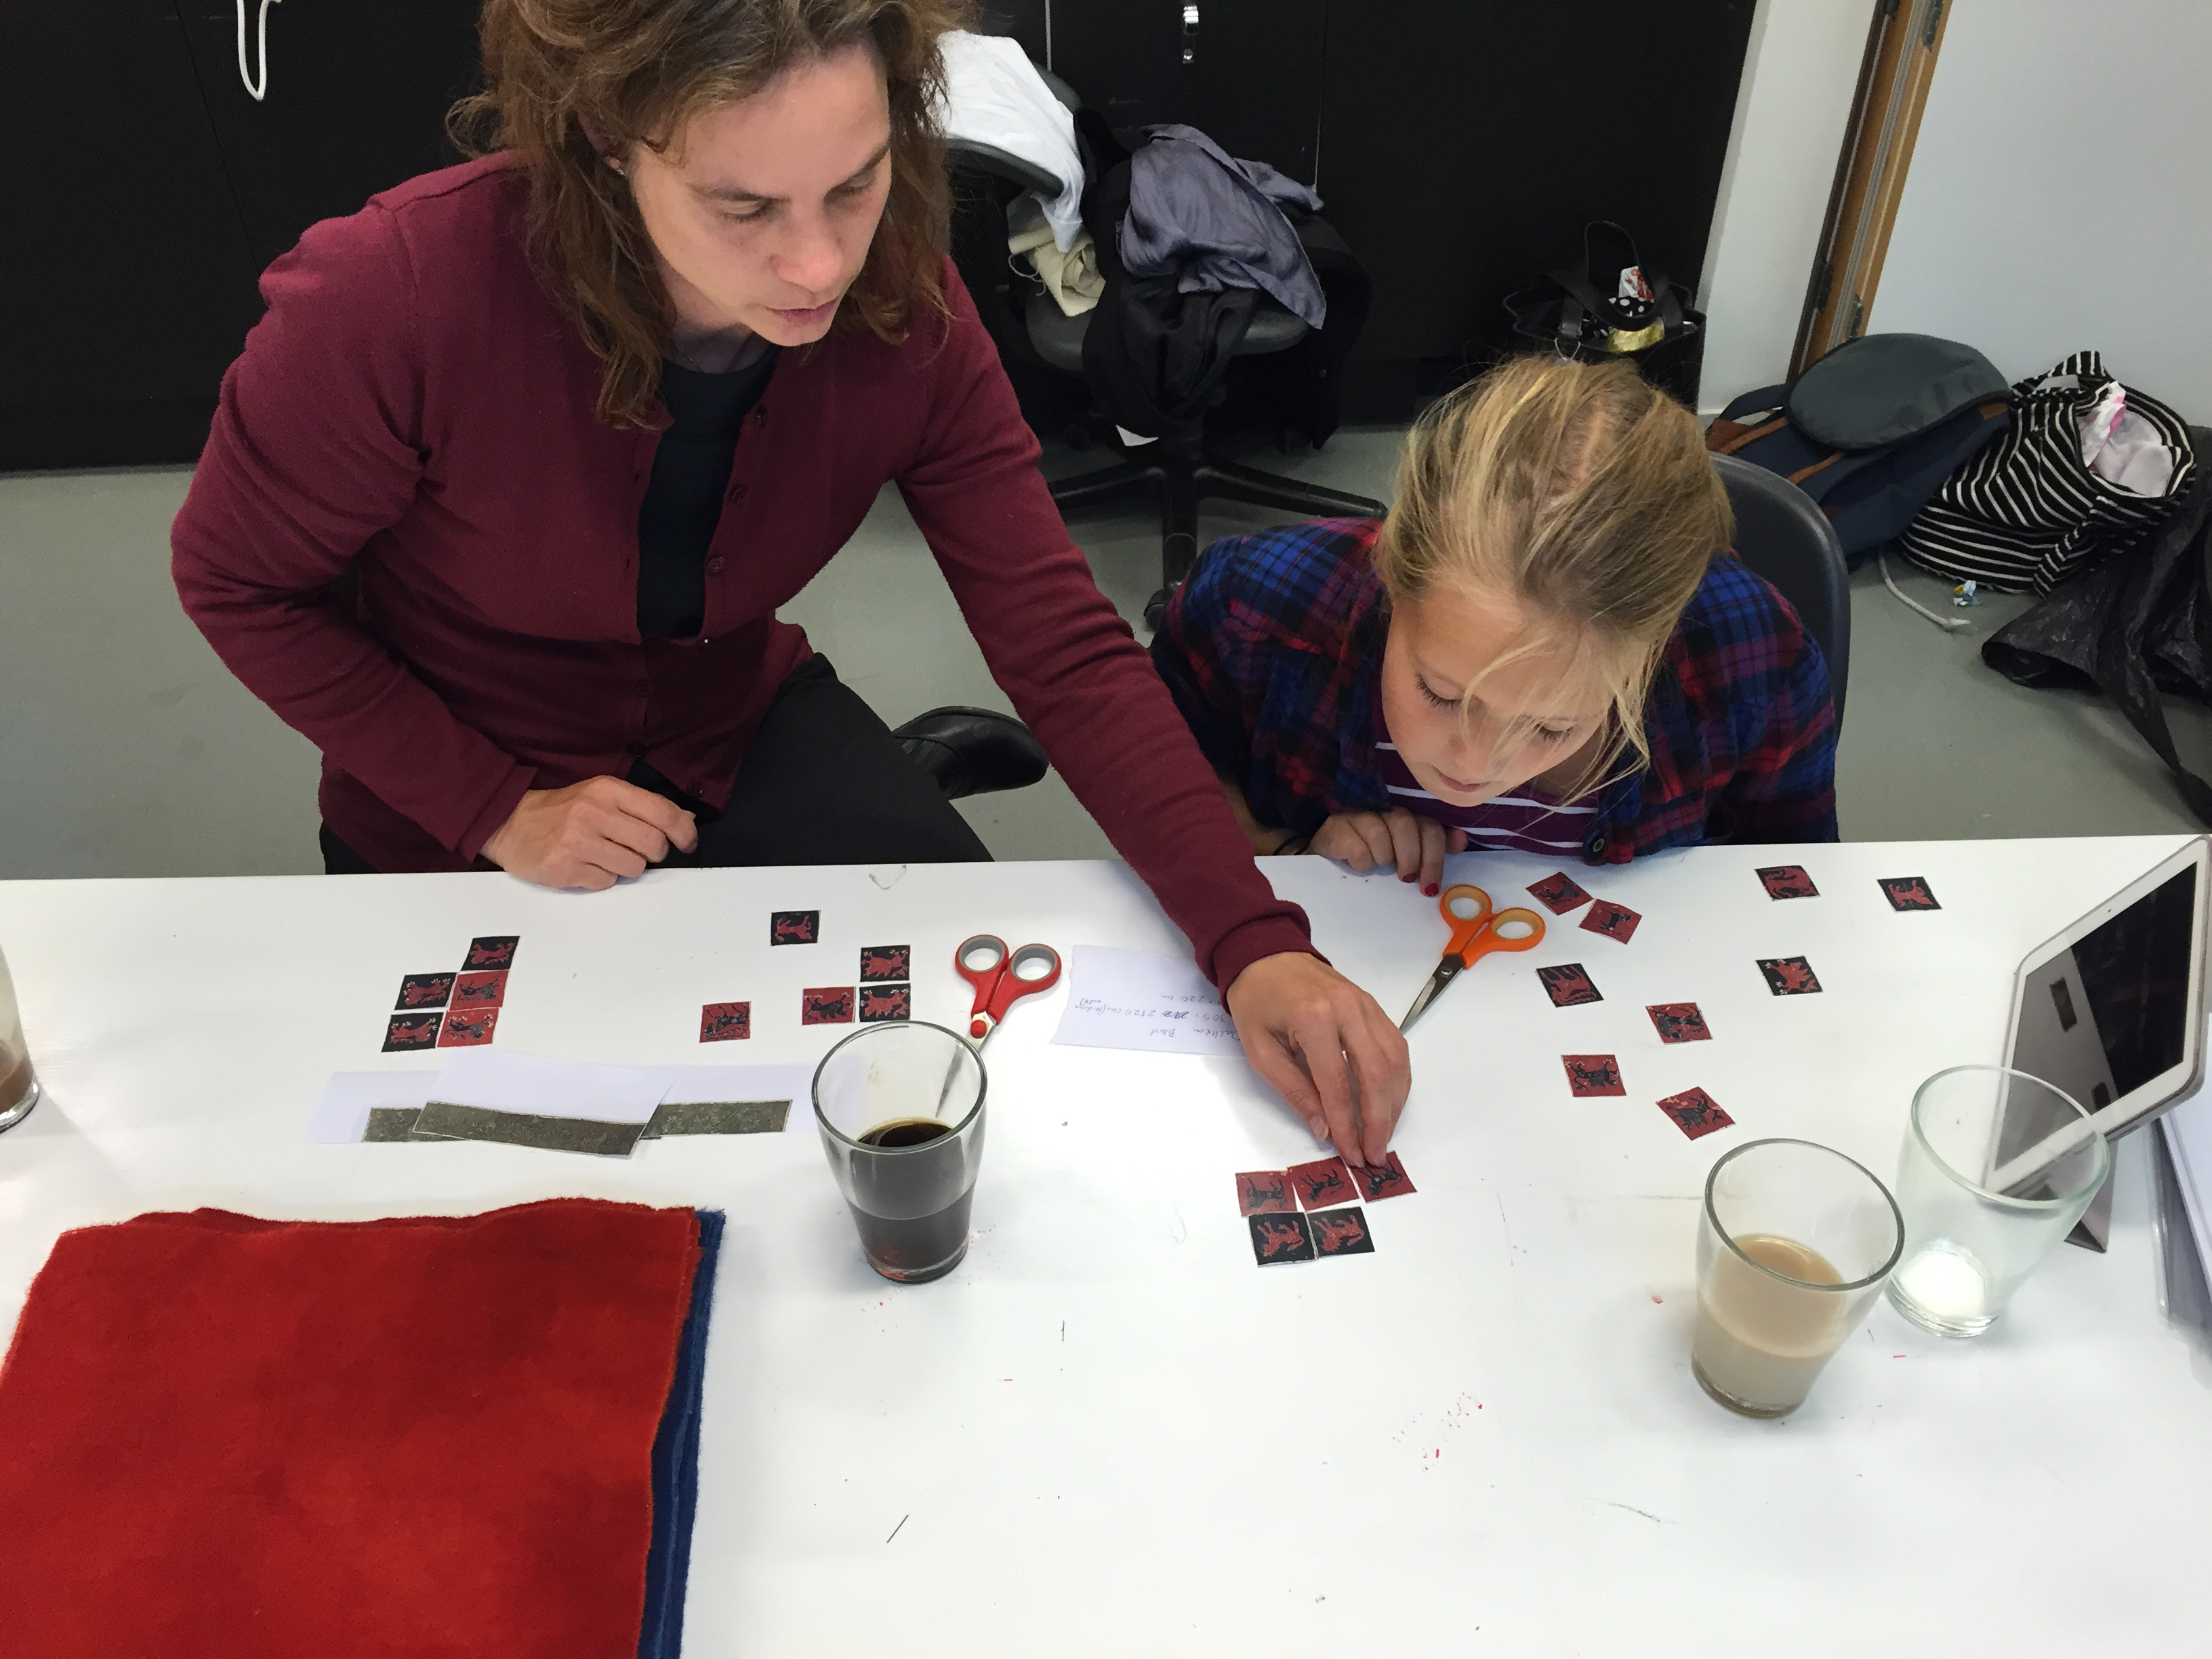 Matching the animal pairs, Magdalena Fick and Allis Neijman